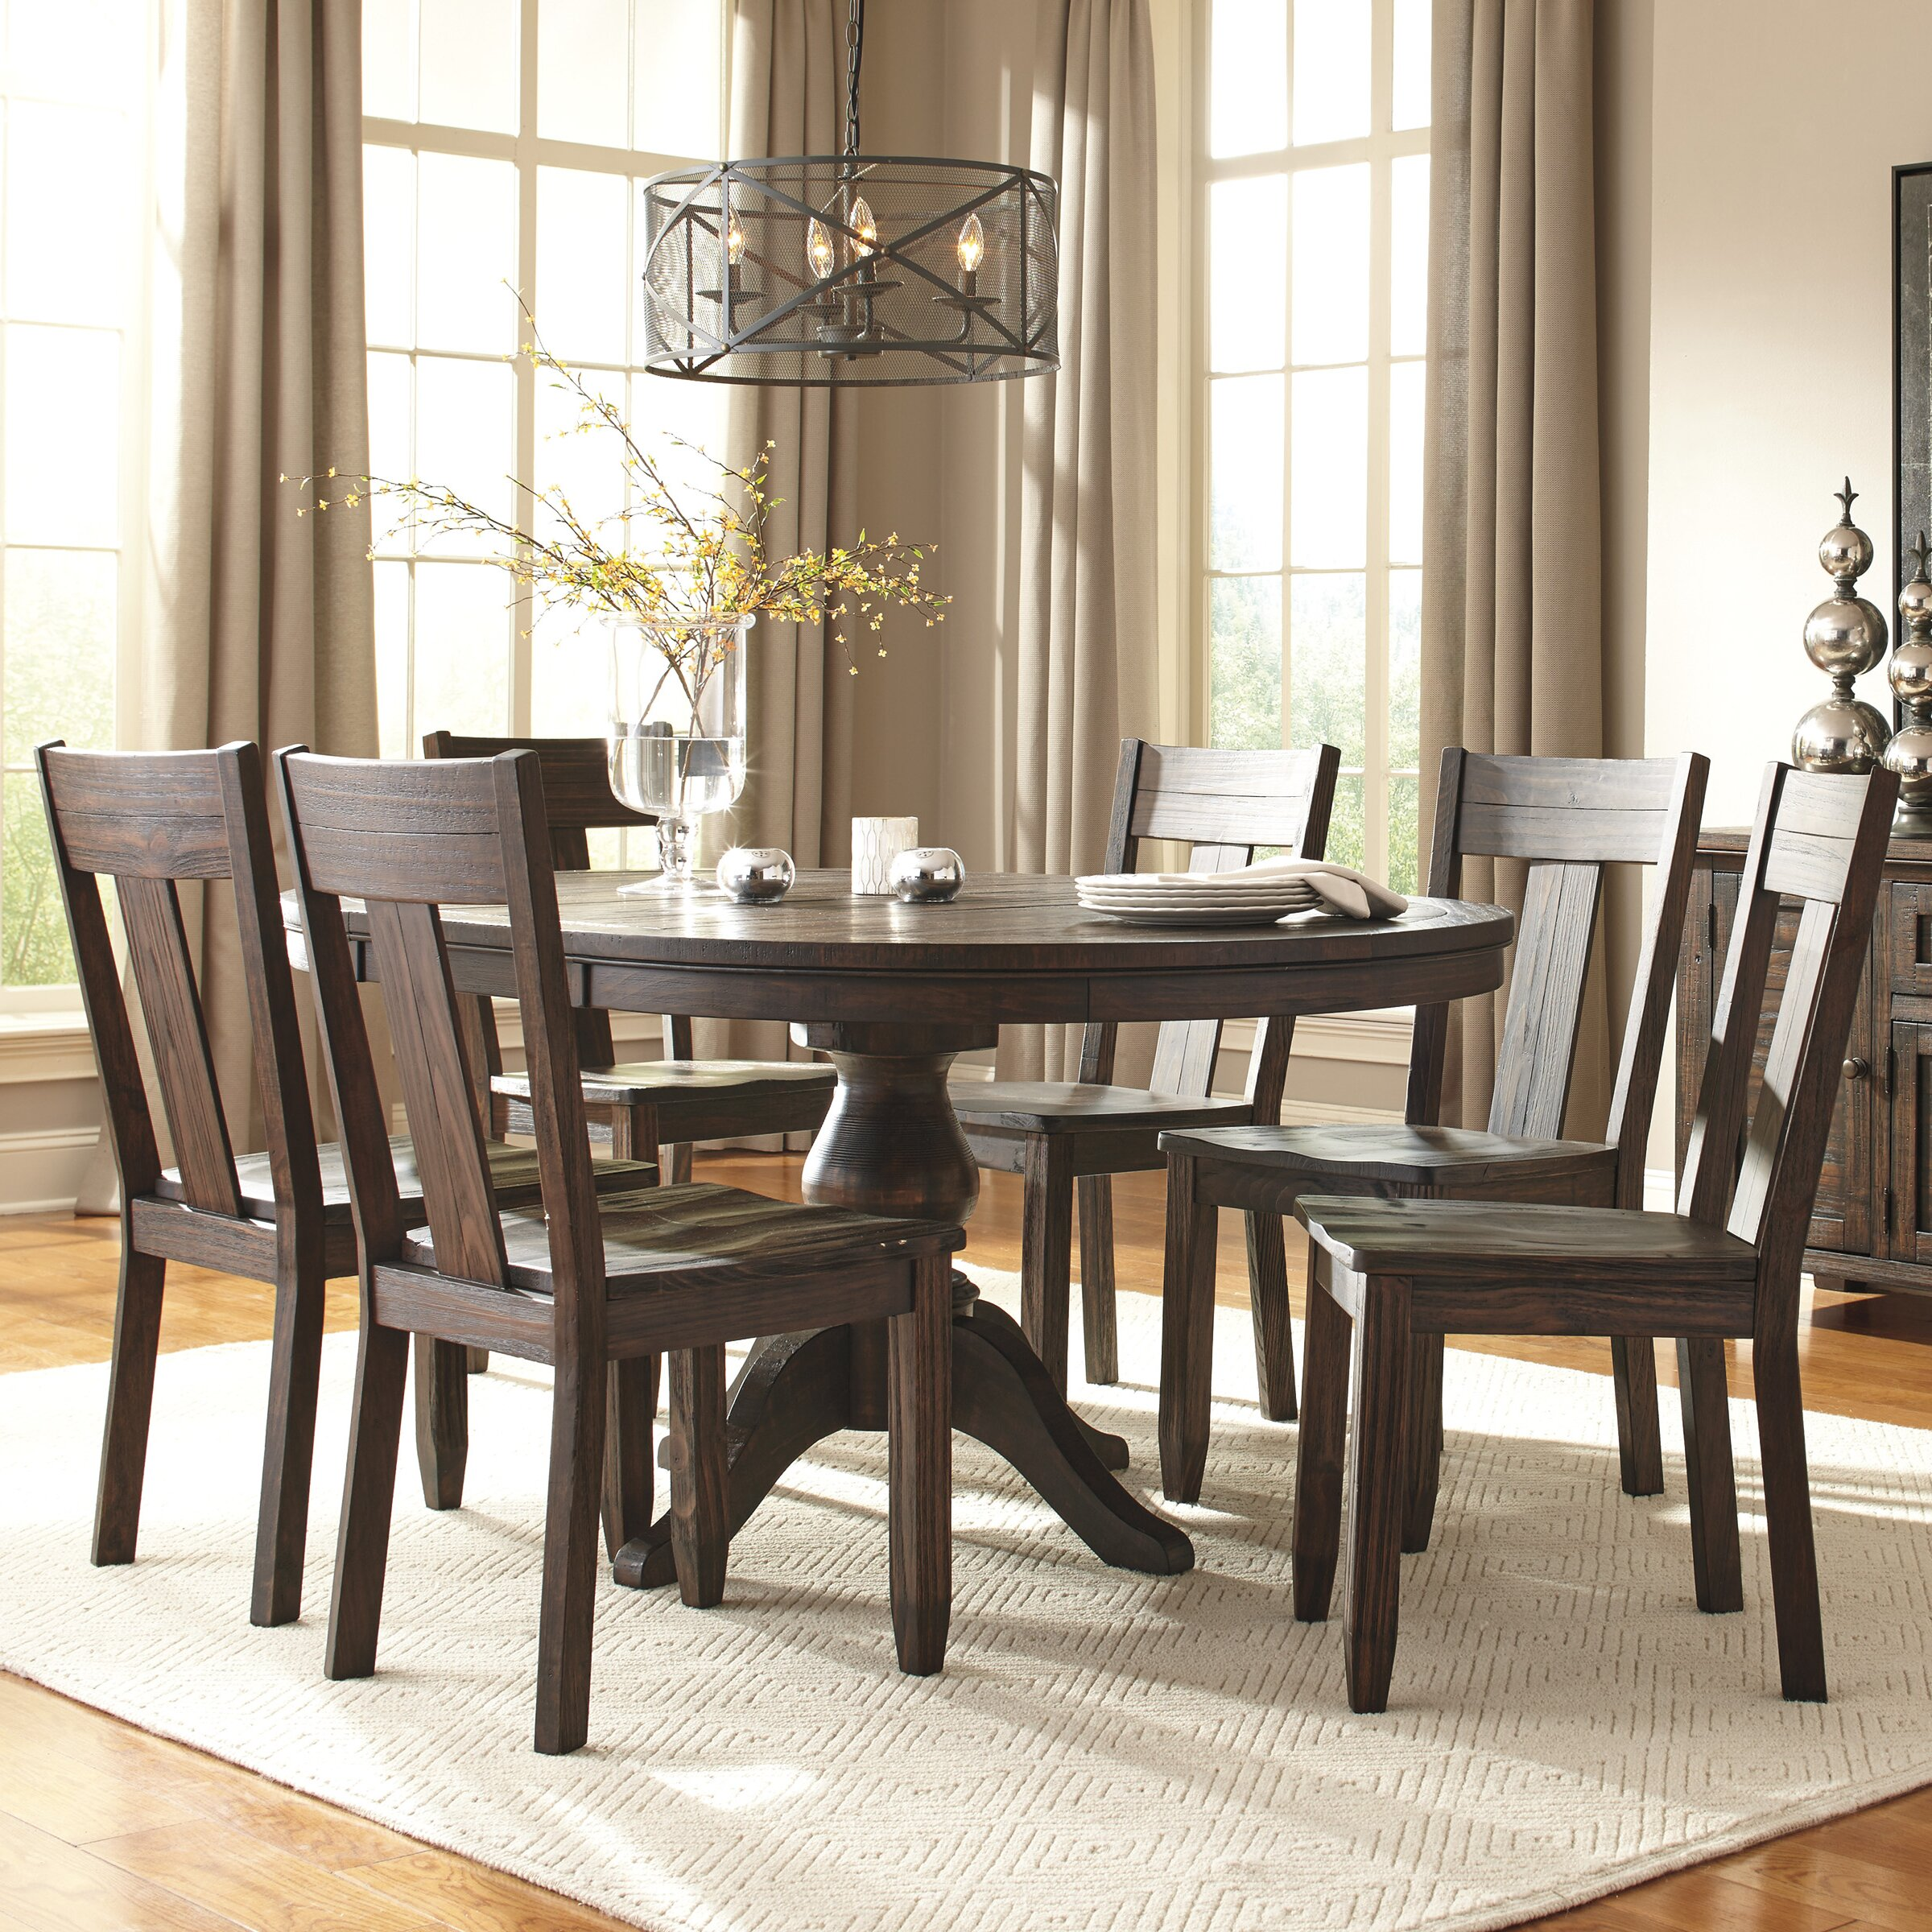 Signature design by ashley 7 piece dining set reviews for Furniture 7 reviews